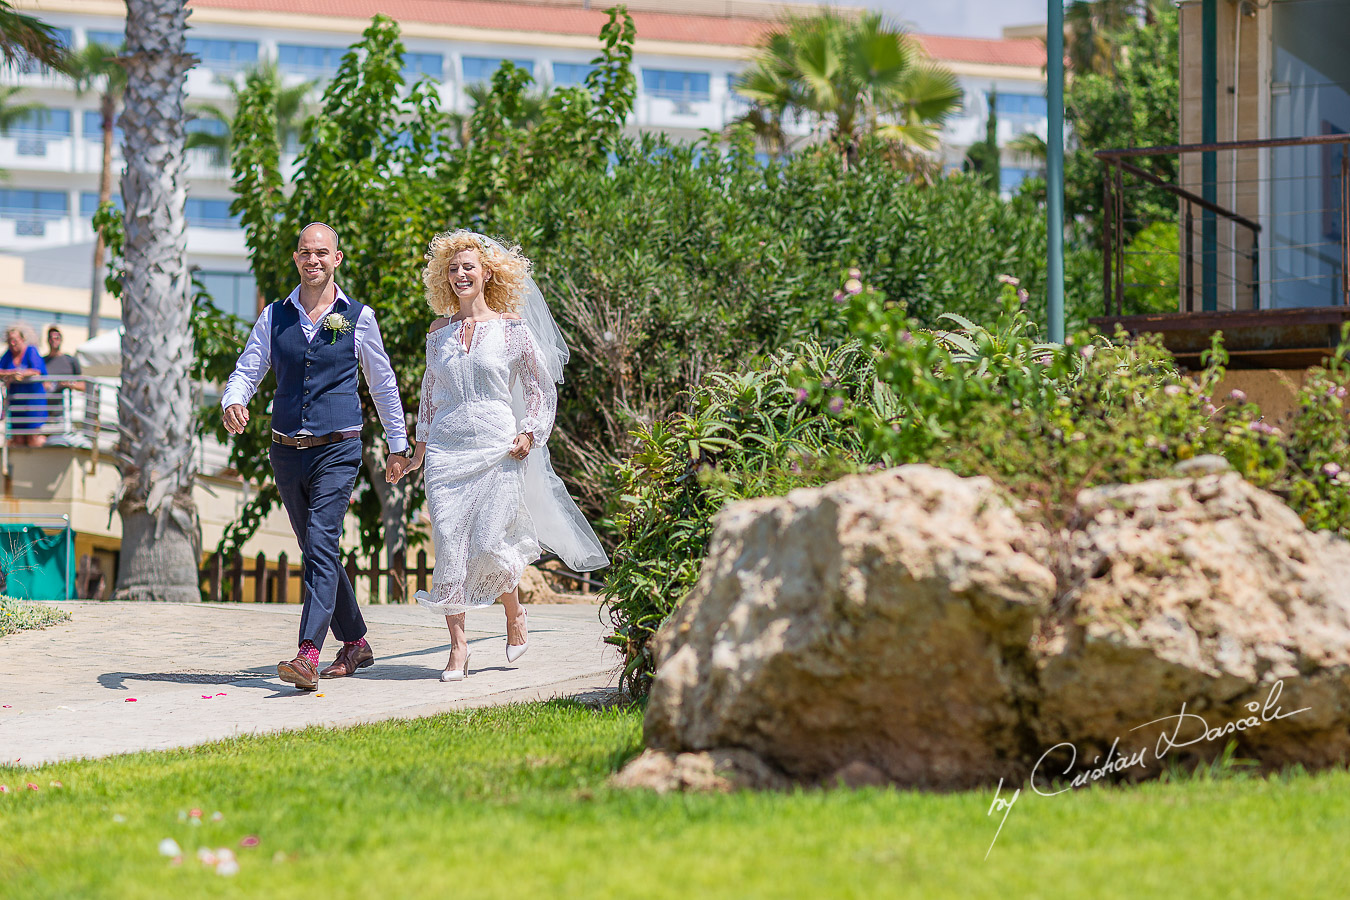 Bride and Groom arrive at their Jewish Wedding Ceremony in Cyprus.